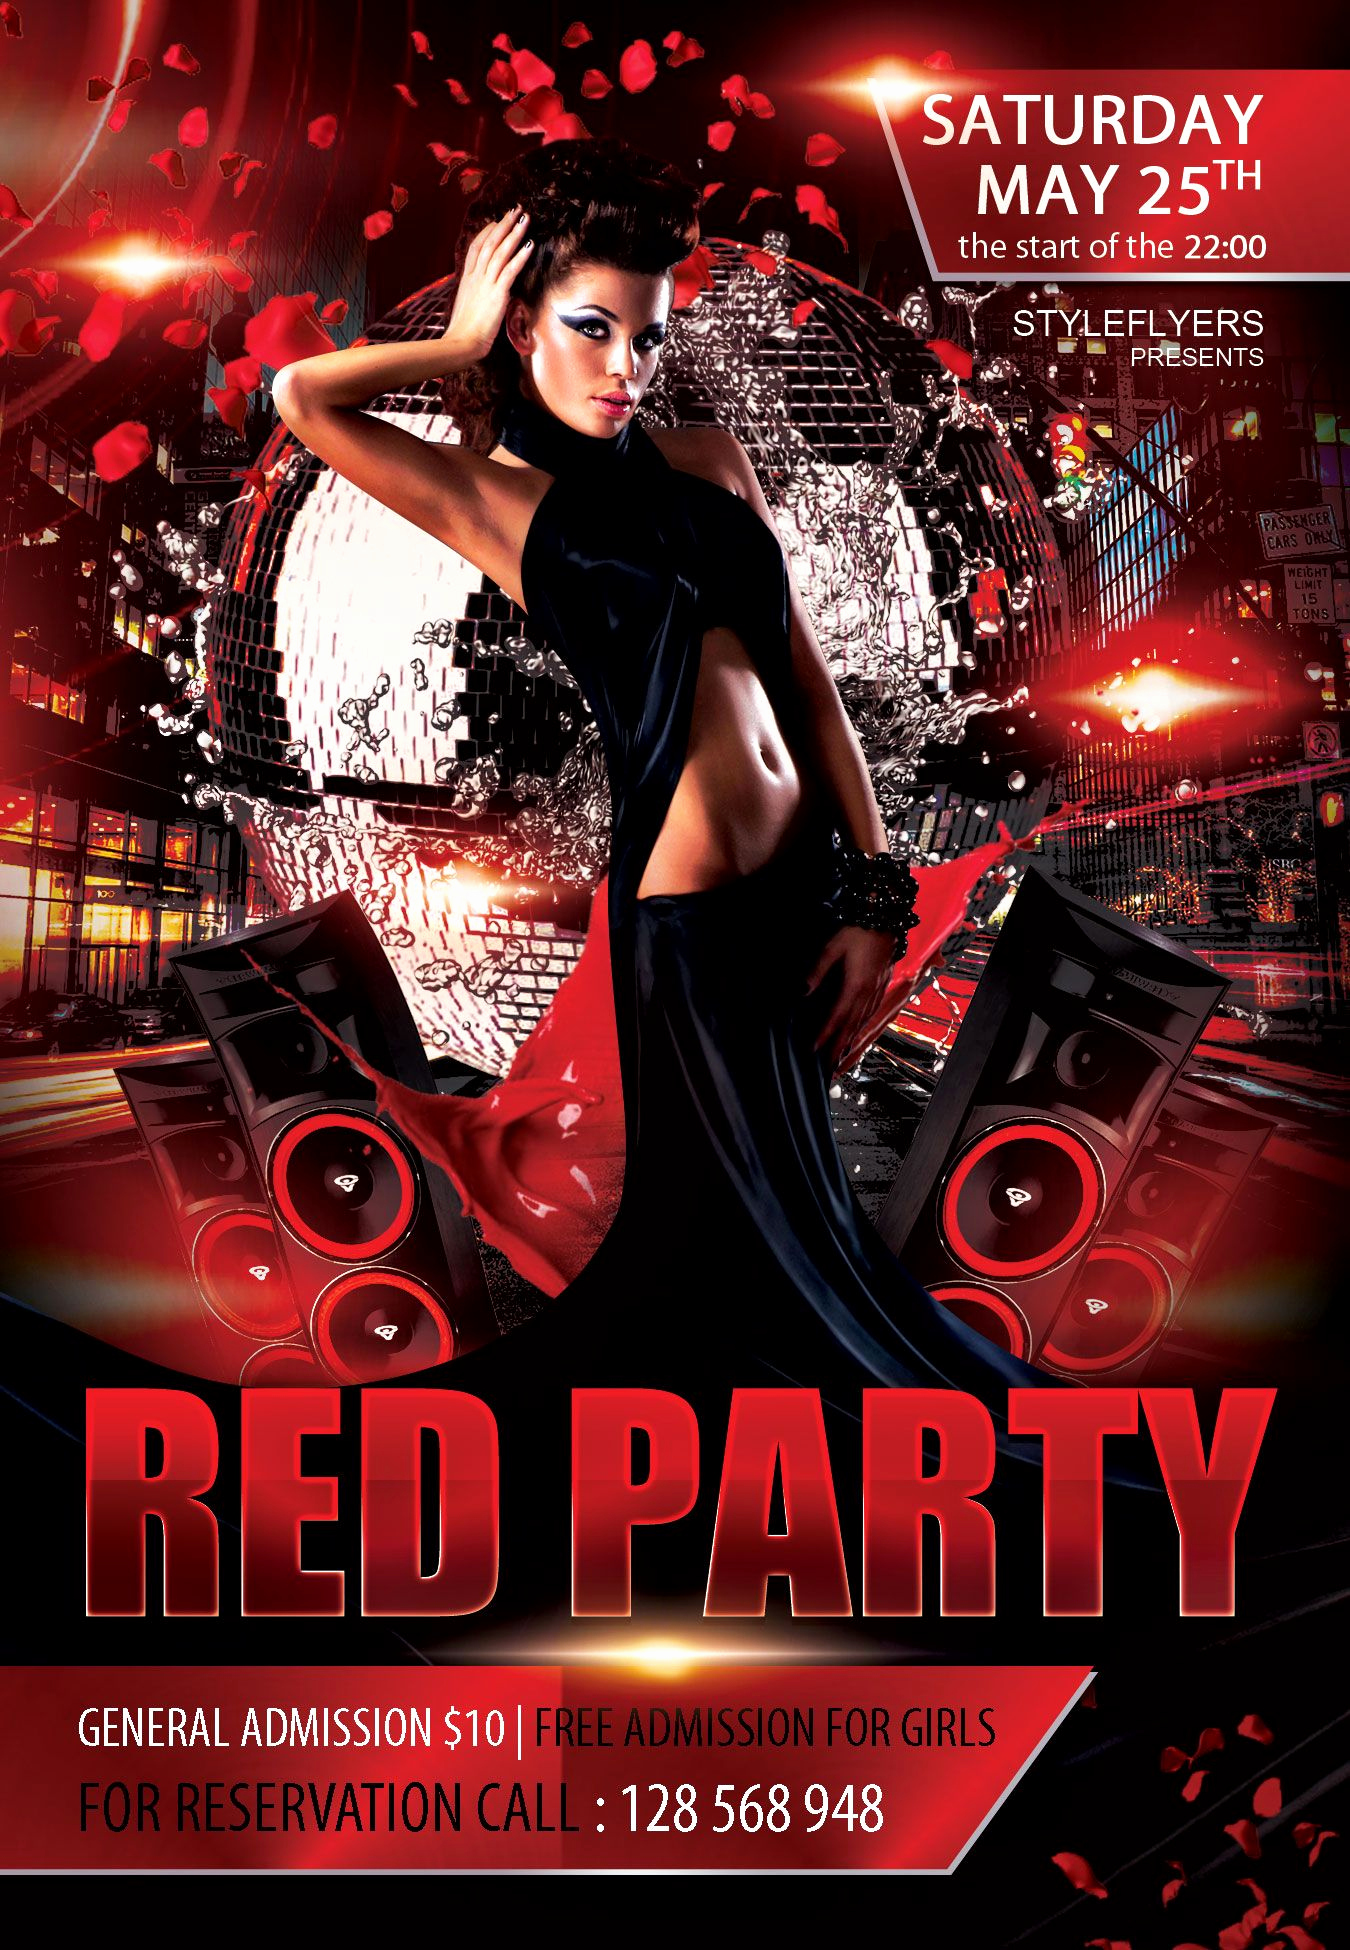 Night Club Flyer Templates Beautiful Free Red Party Flyer Psd Template Styleflyer Club